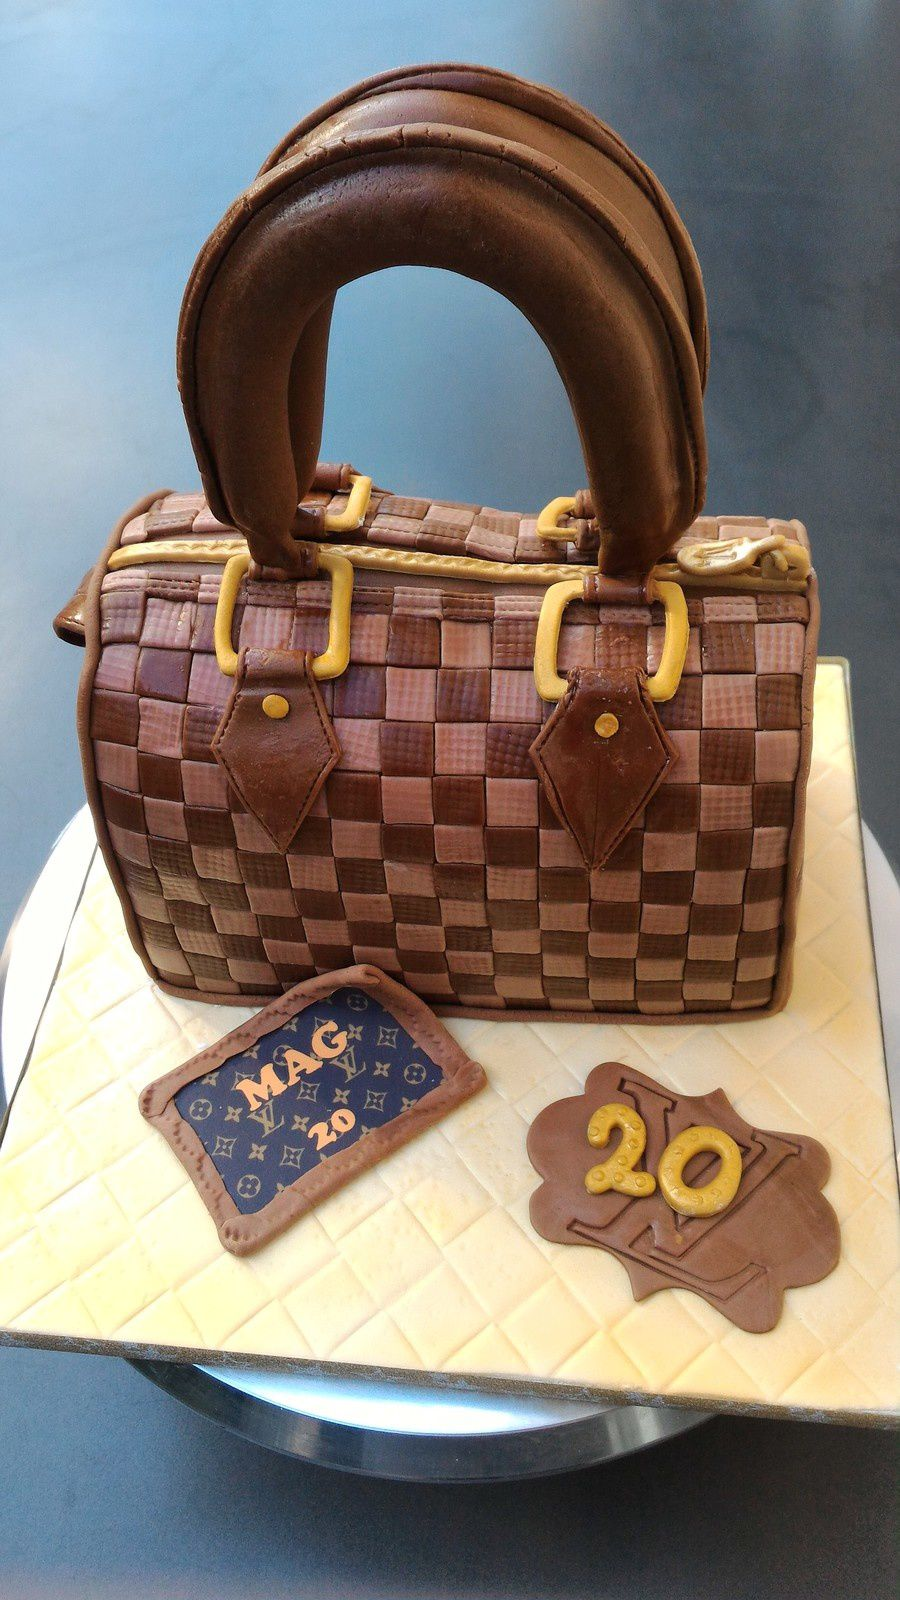 GATEAU SAC LOUIS VUITTON &quot&#x3B;SPEEDY&quot&#x3B;